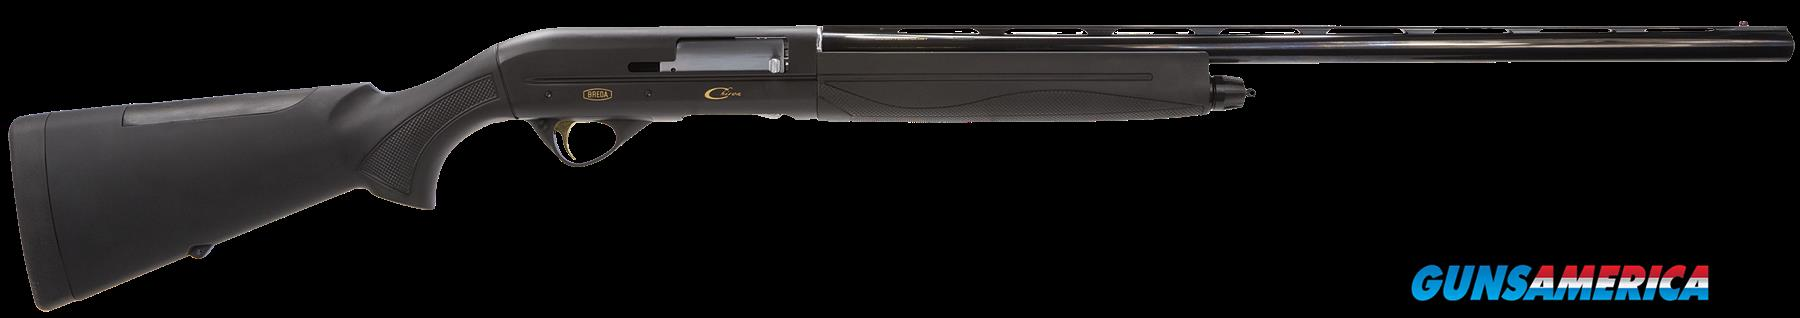 "Breda/Dickinson BRE19 Chiron Semi-Automatic 12 Gauge 30"" 3"" Synthetic Black Stk Blued Steel  Guns > Shotguns > B Misc Shotguns"